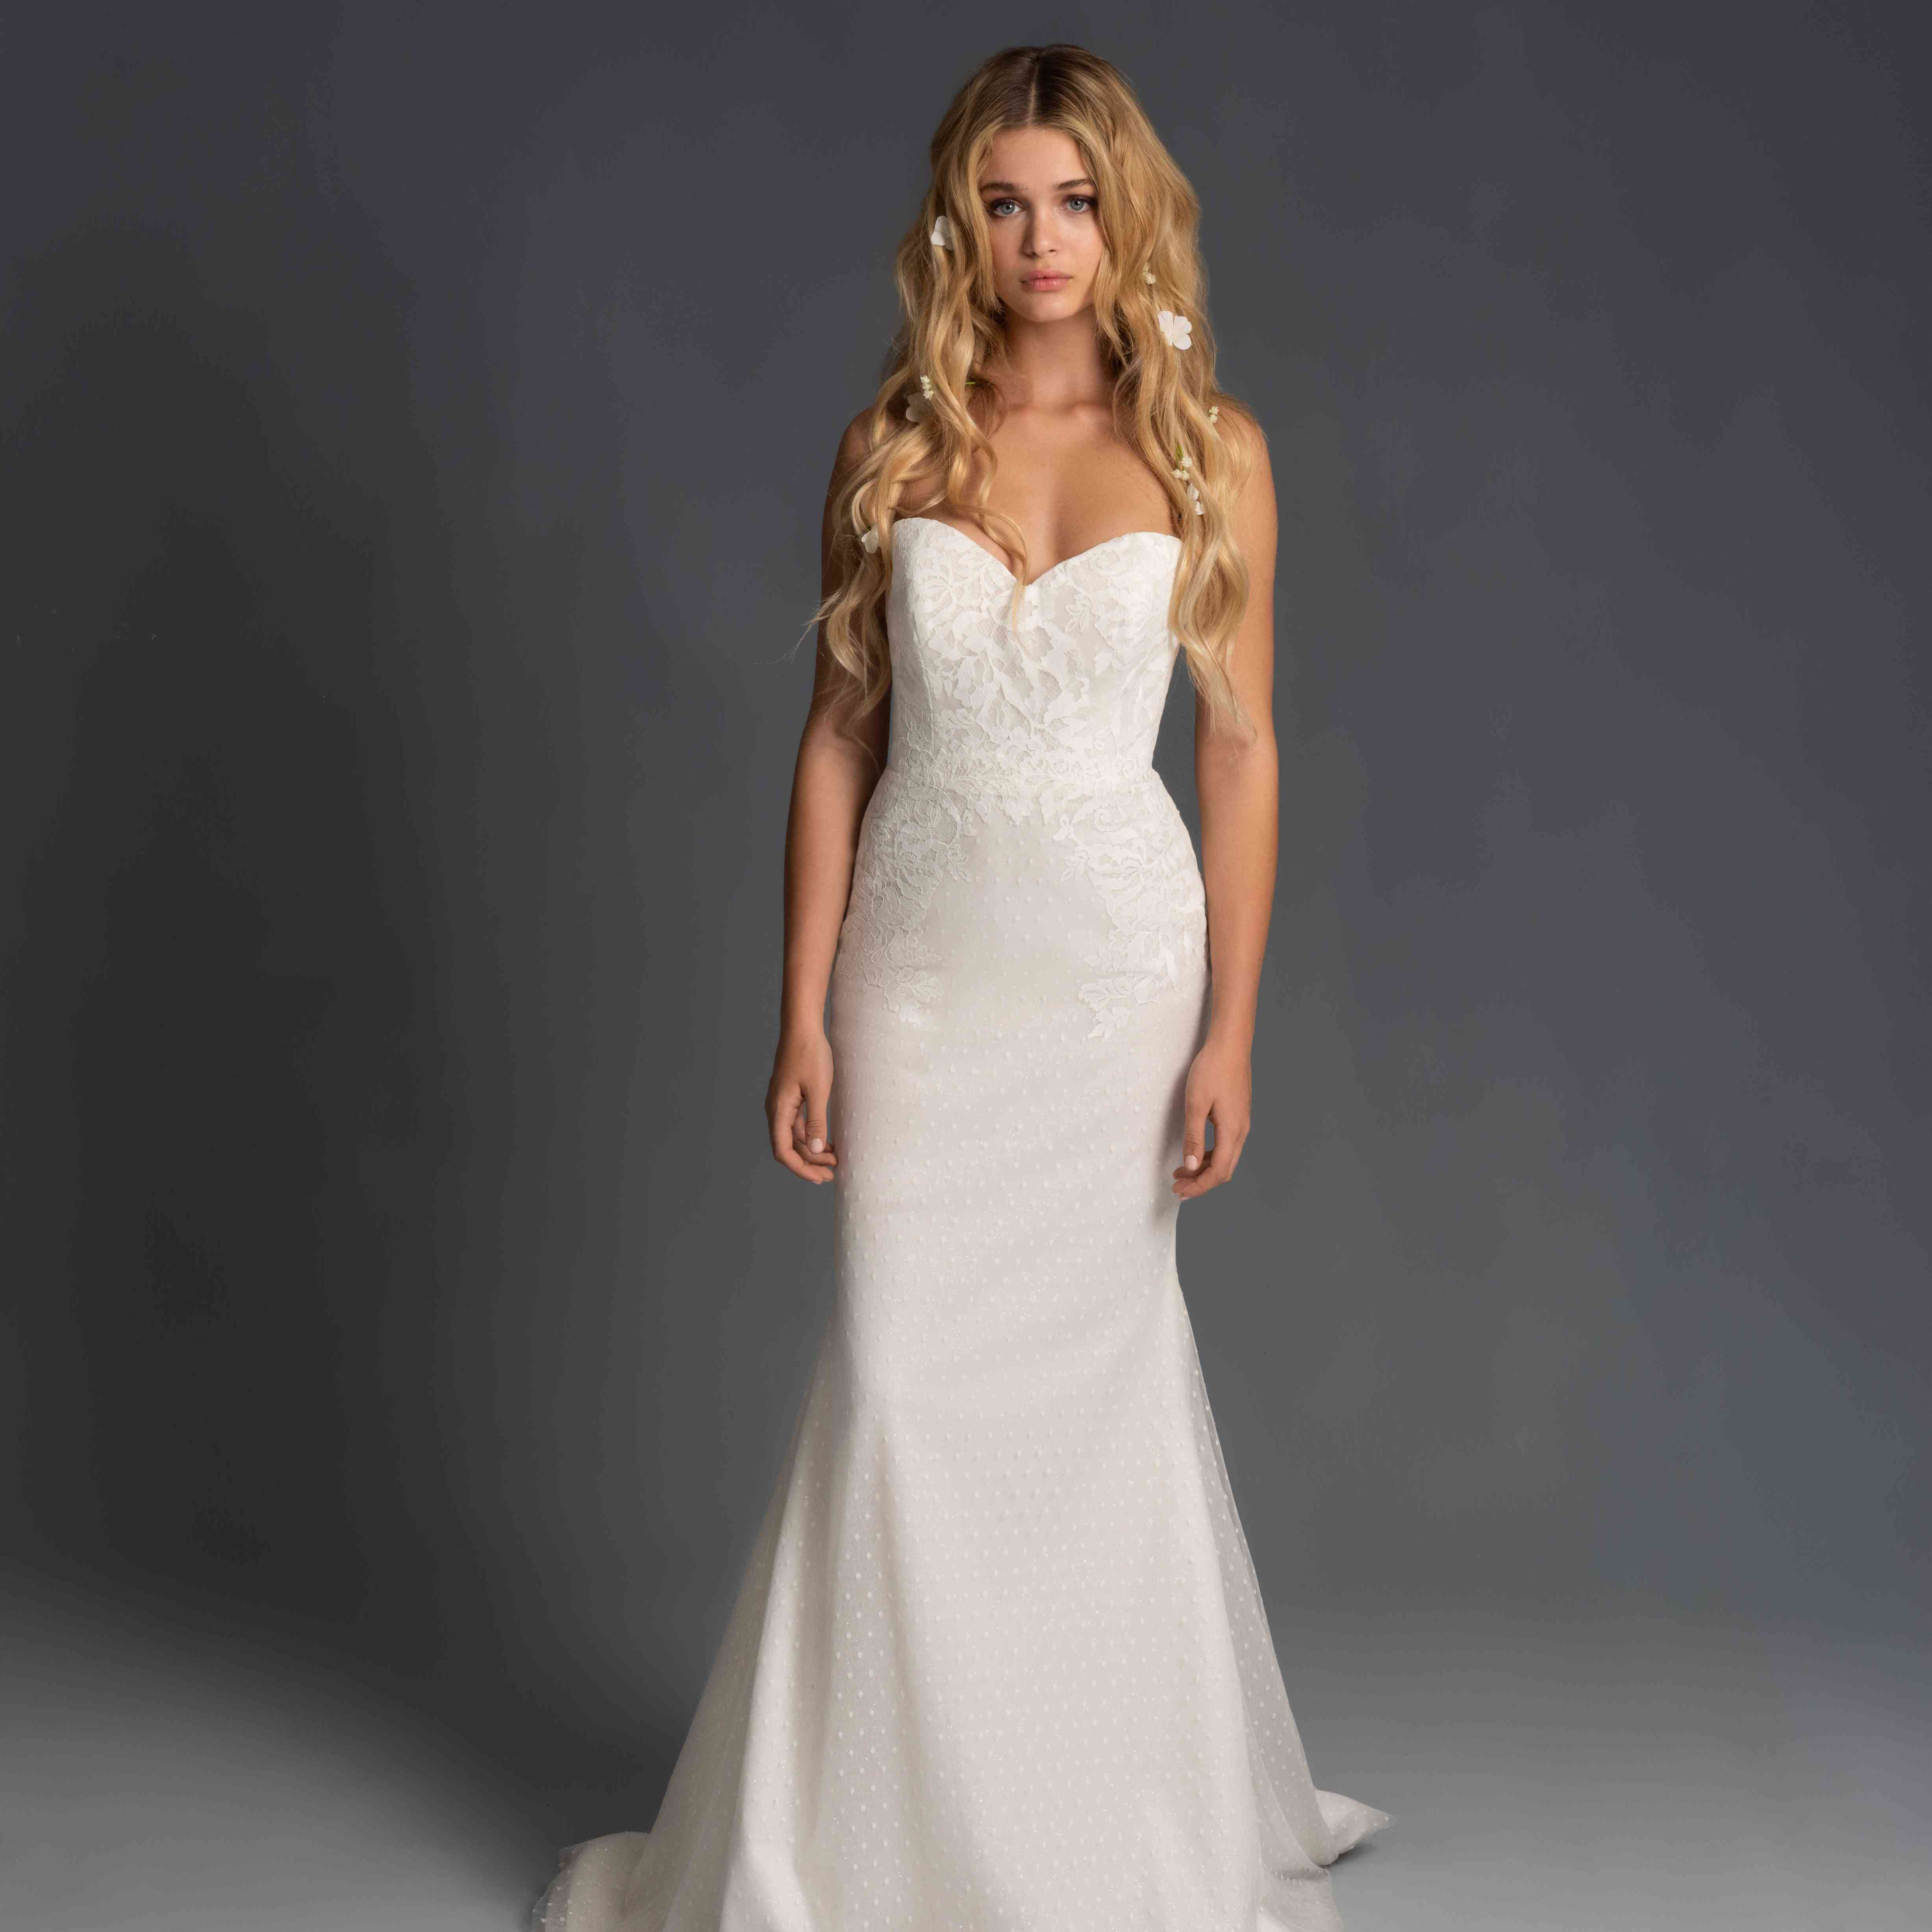 Model in strapless fit-and-flare wedding dress